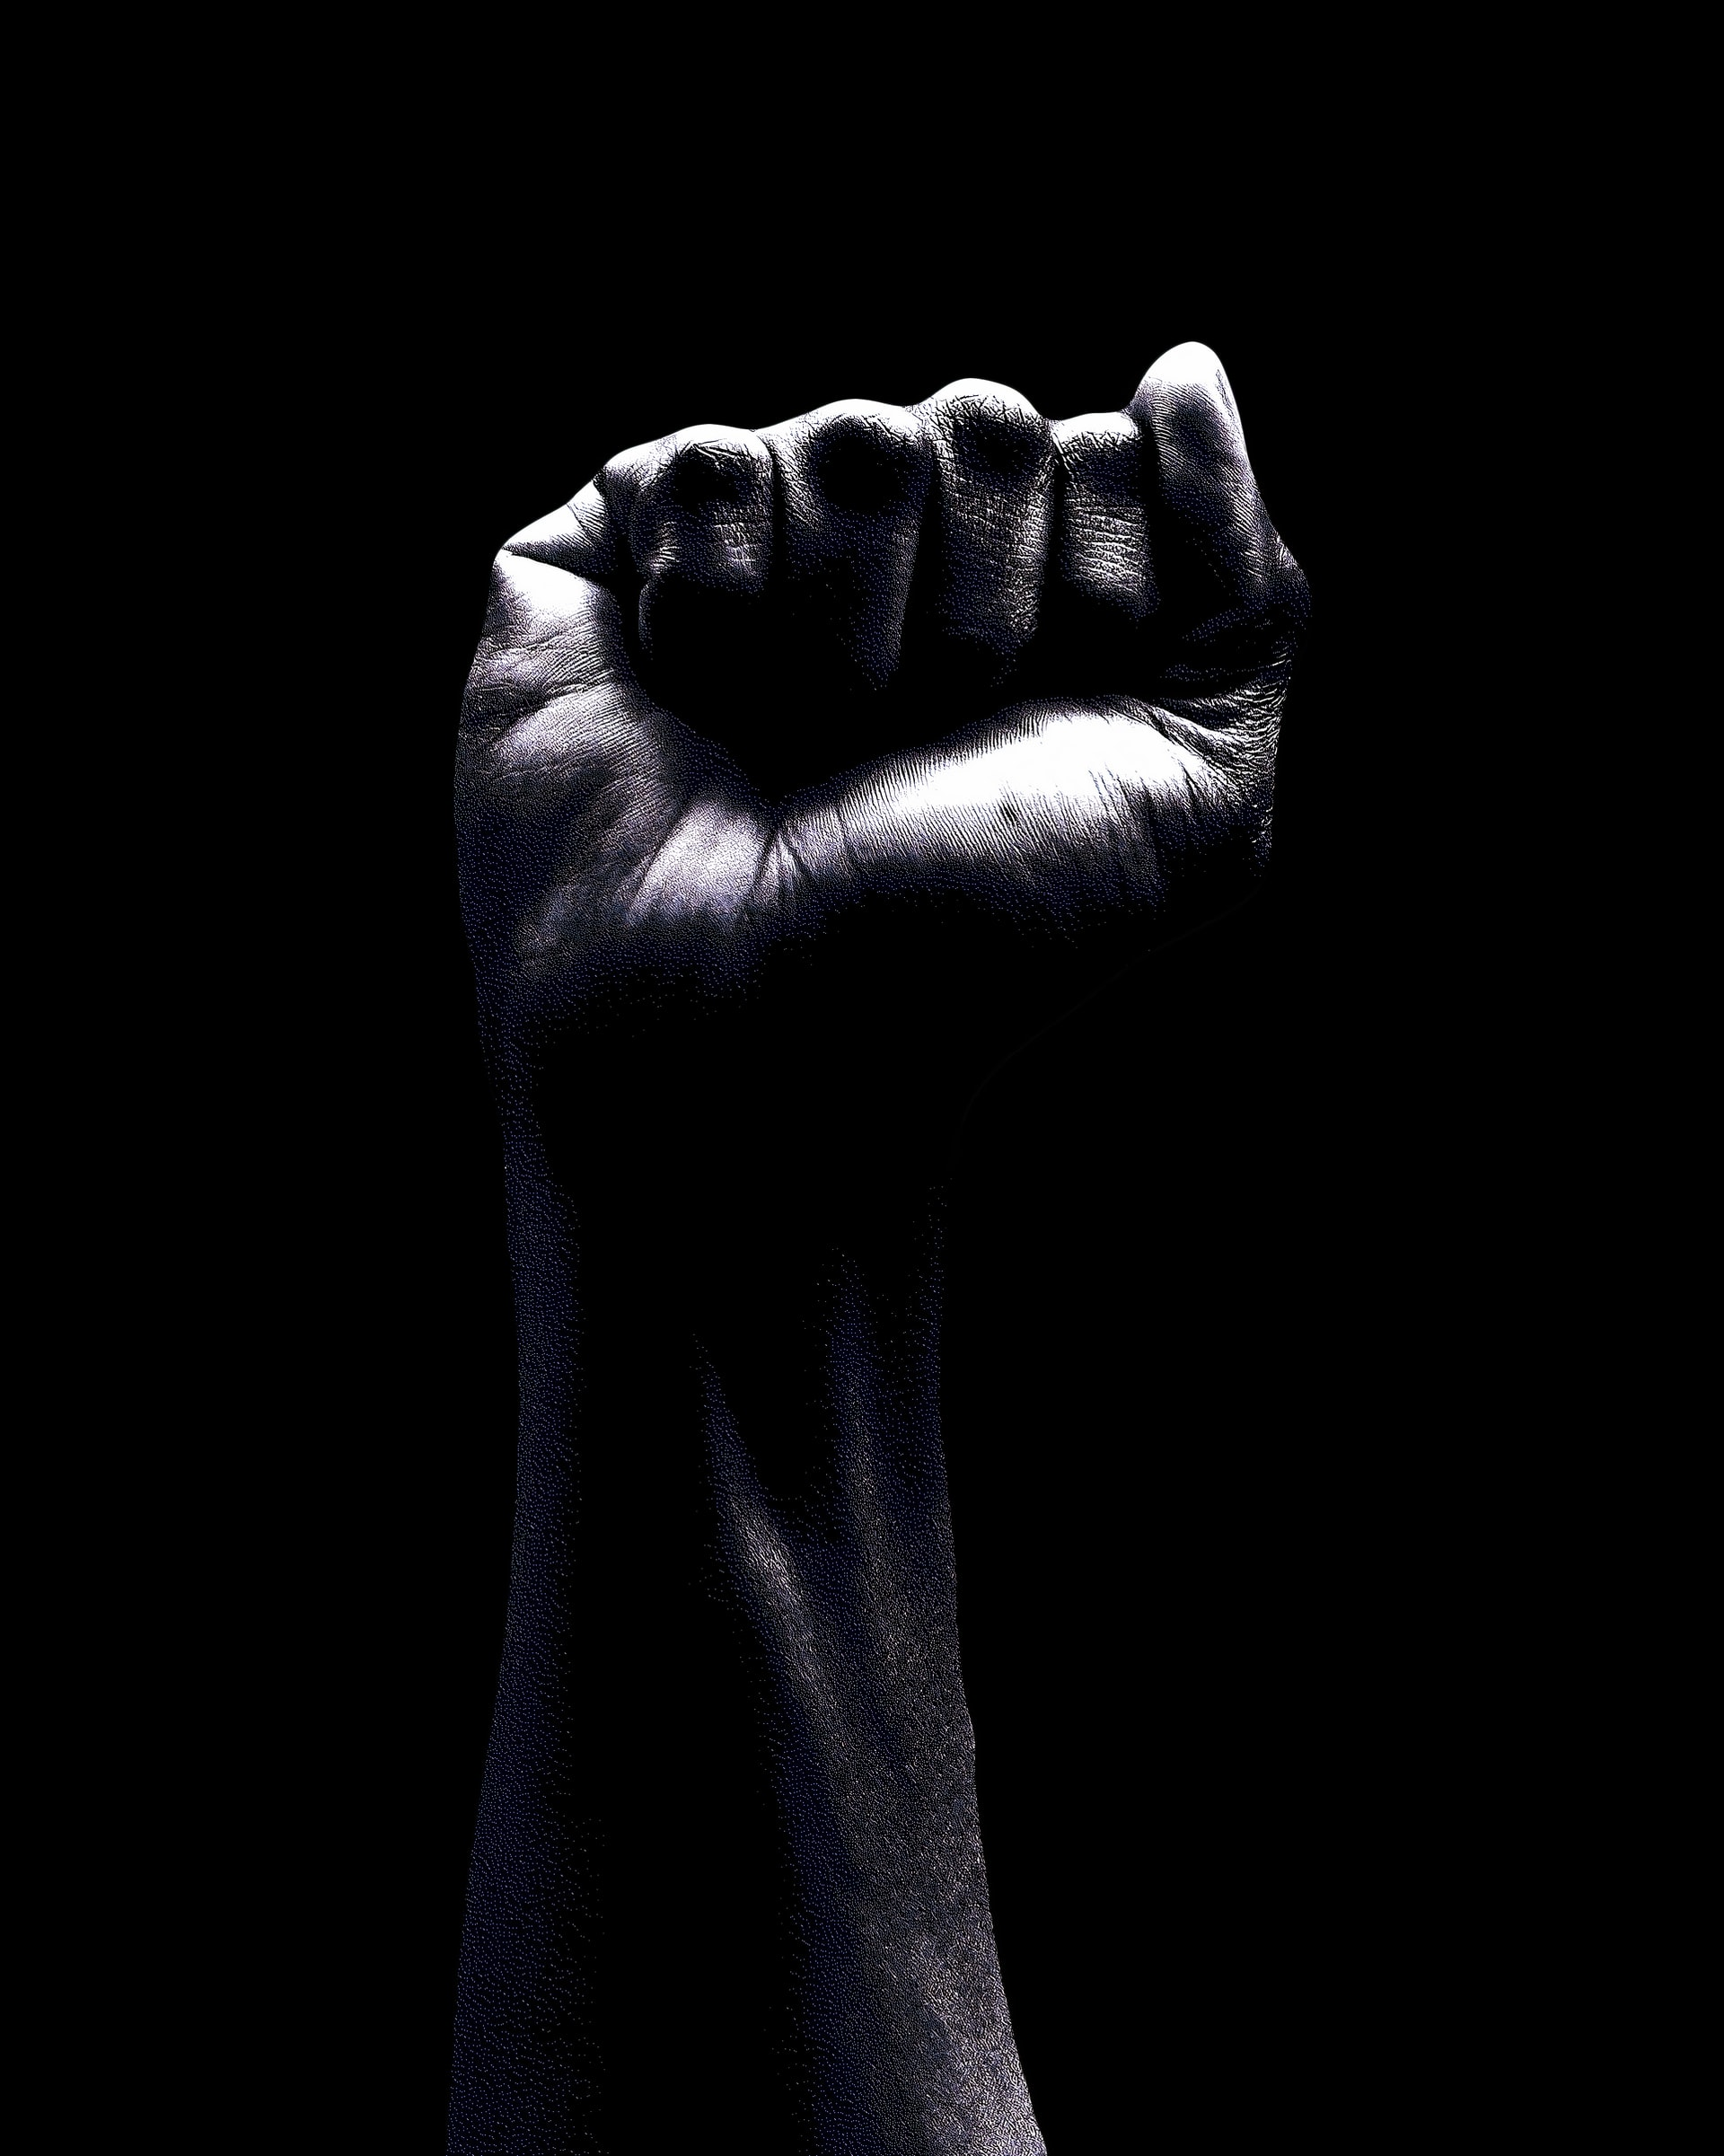 A fist in the air against a black background. Photo courtesy of Oladimeji Odunsi on Unsplash.